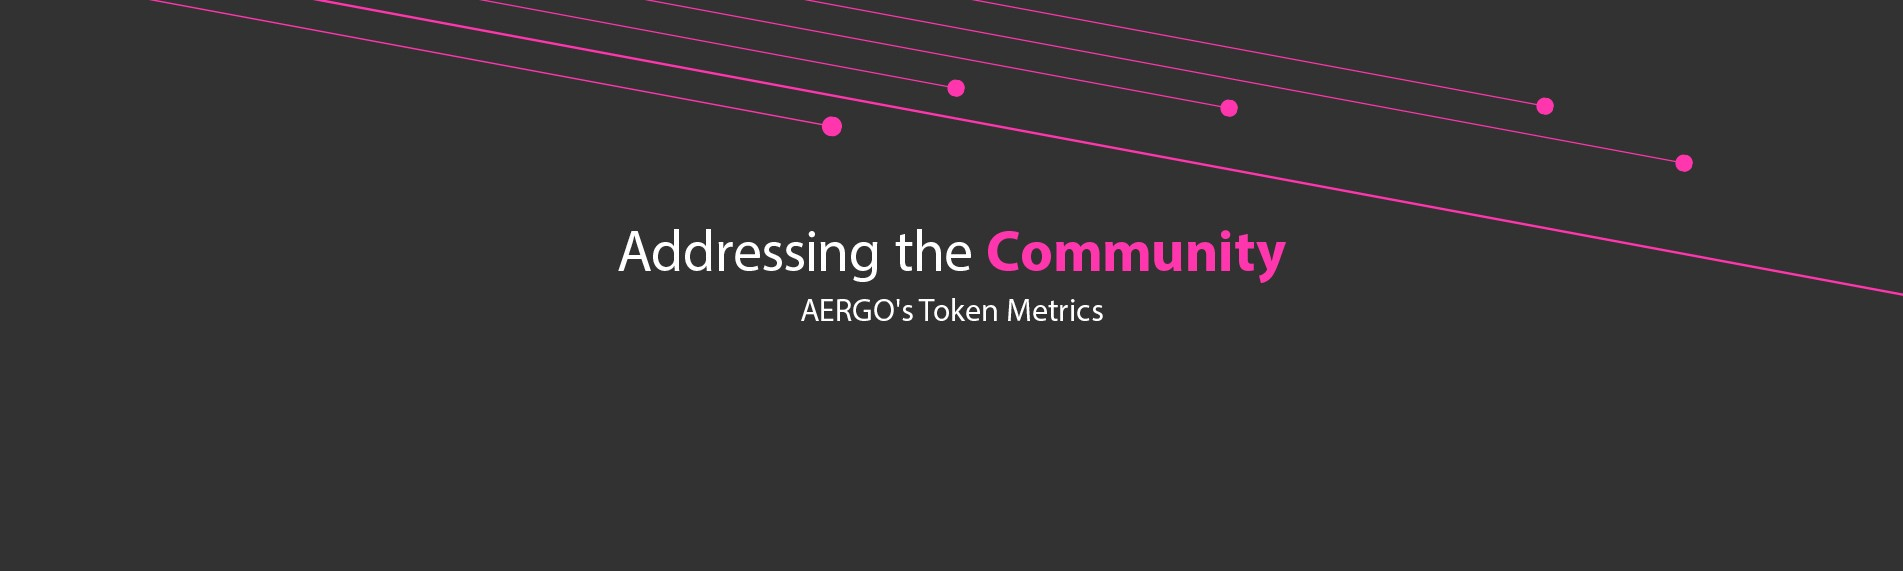 addressing the community aergo s token metrics aergo medium